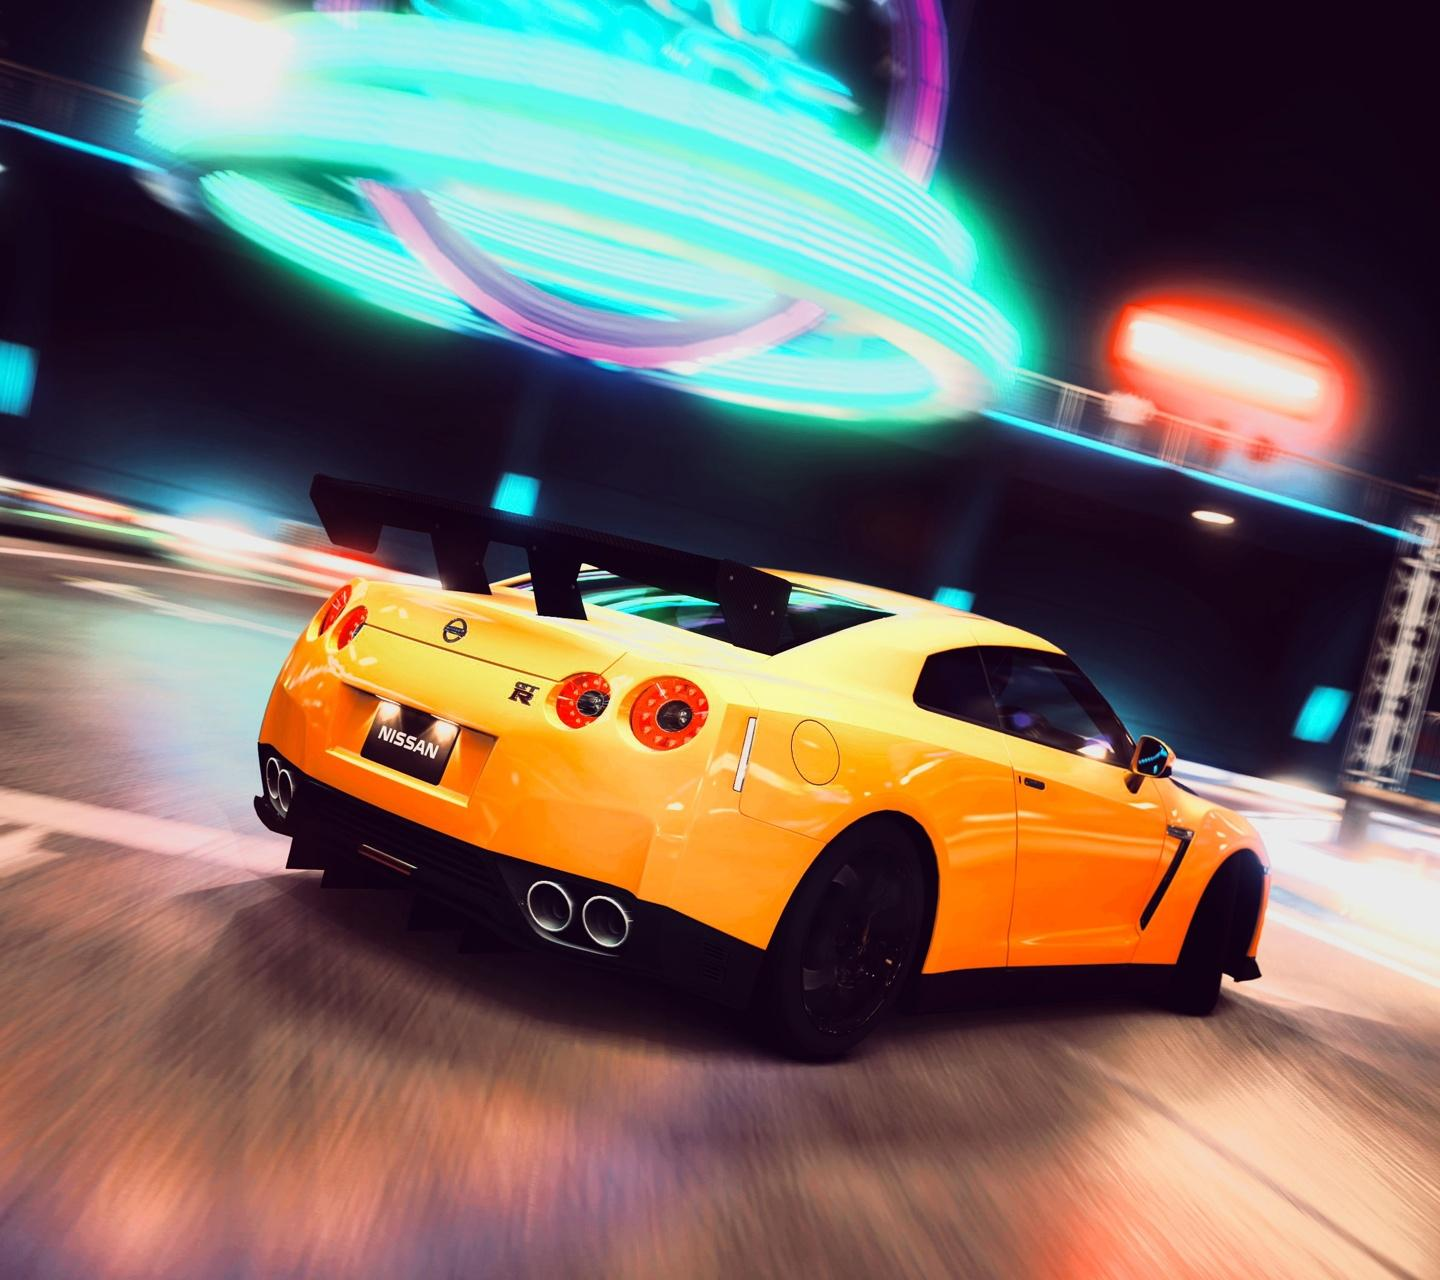 Nissan Juke Yellow Car 4k Wallpaper: Nissan 370Z Yellow Sport Car HD Wallpaper